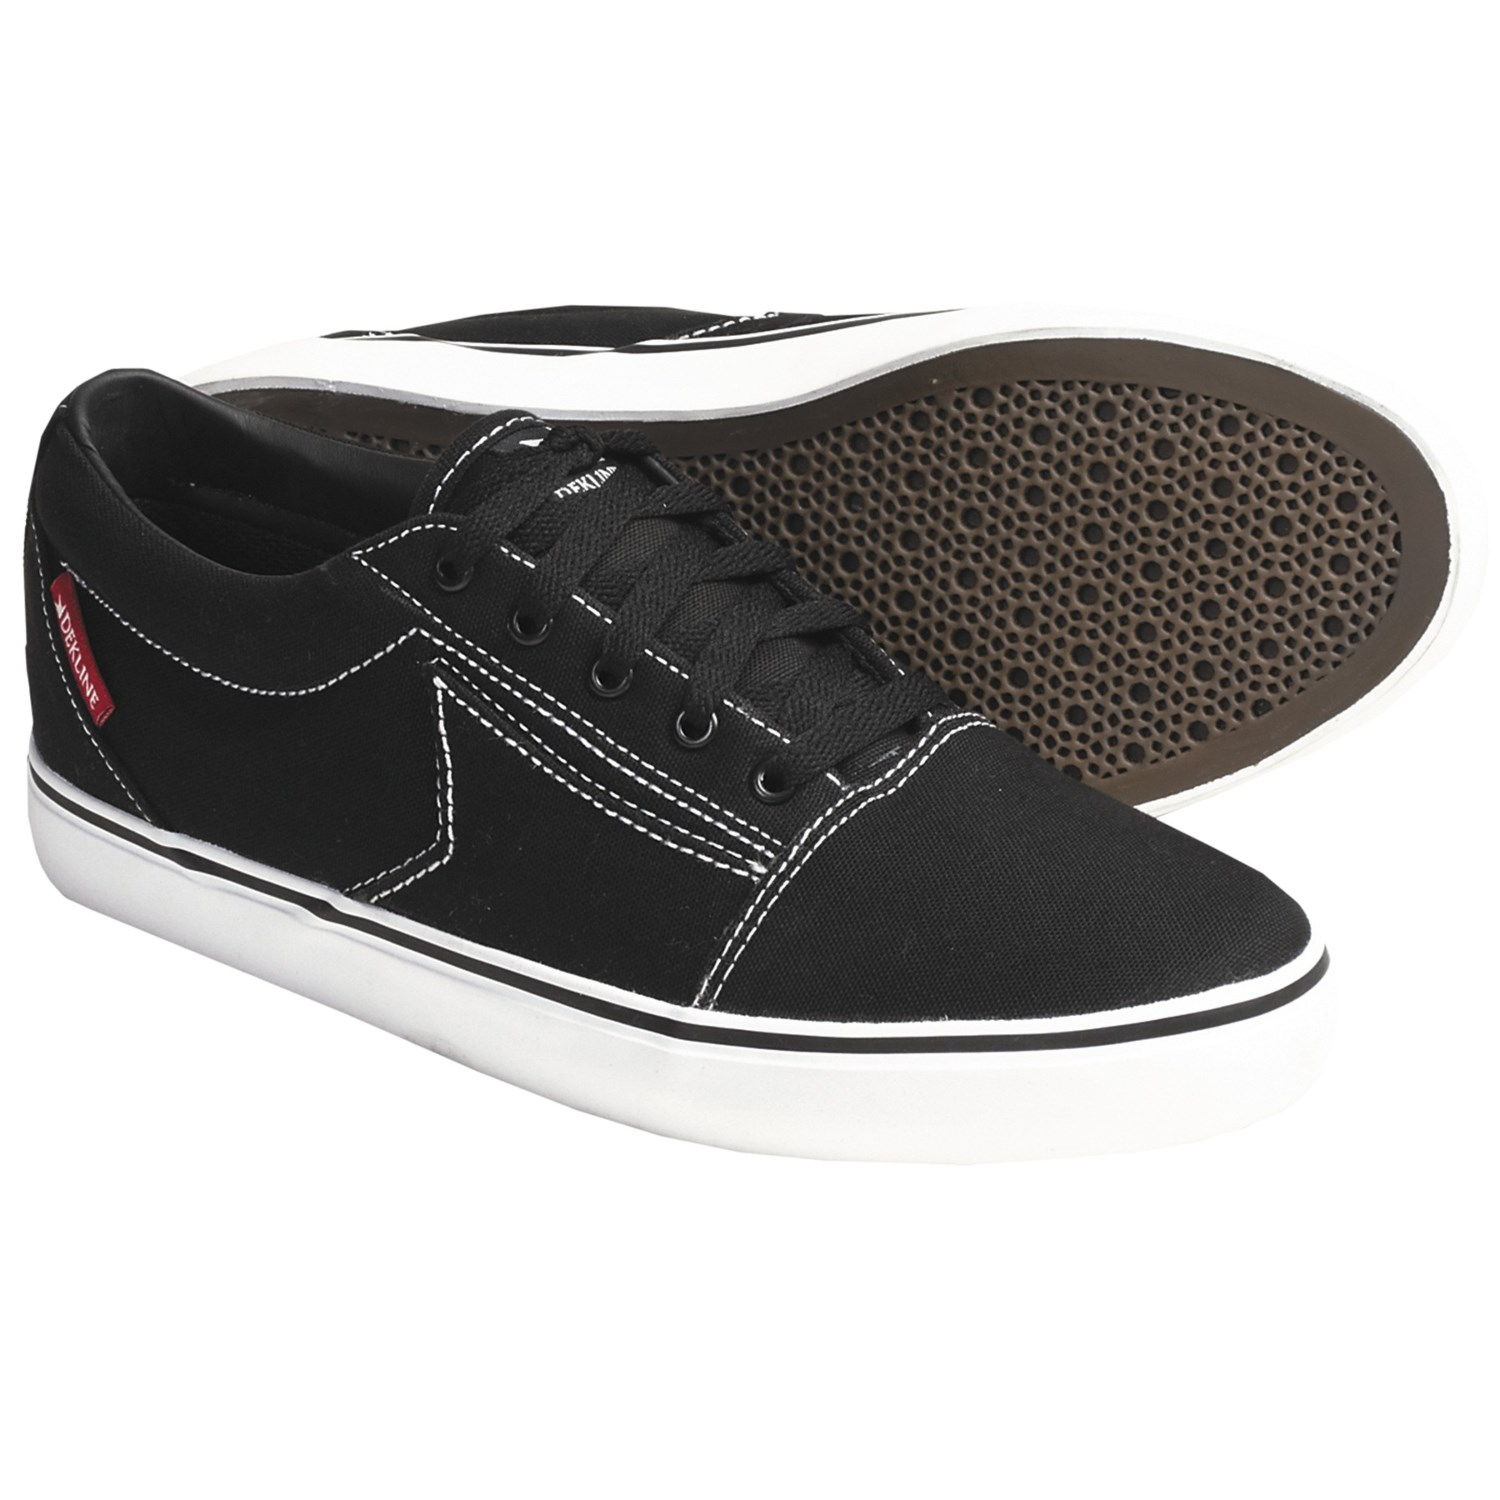 dekline belmont skate shoes for men in black white stitch canvas7Ep7E4061n 057E15003 - shoes for men